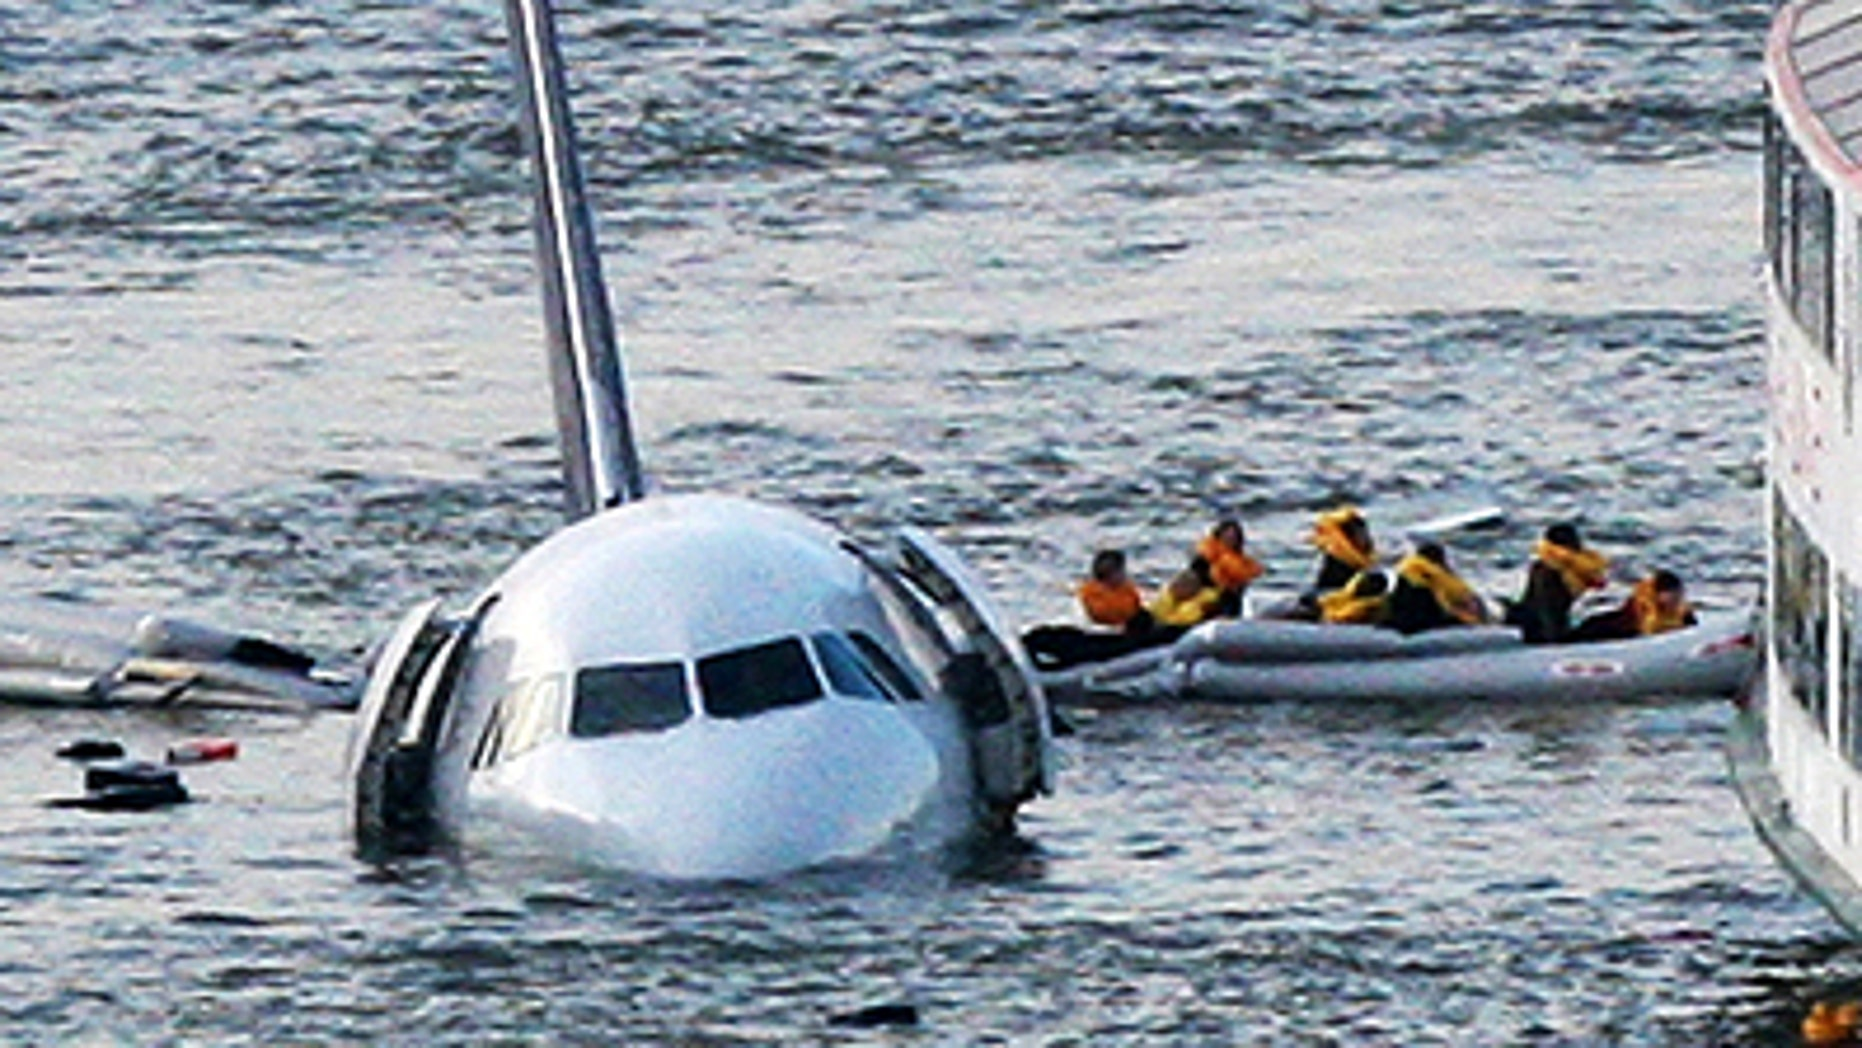 In this Jan. 15, 2009 file photo, passengers in an inflatable raft move away from an Airbus 320 US Airways aircraft that has gone down in the Hudson River in New York. The Charlotte Observer reported Wednesday, Jan. 5, 2011 that the Carolinas Aviation Museum in Charlotte, N.C. has almost completed an agreement to buy the US Airways jet that made a near-miraculous landing on the Hudson River in 2009 from the insurance company that owns it.   (AP Photo/Bebeto Matthews, FILE)